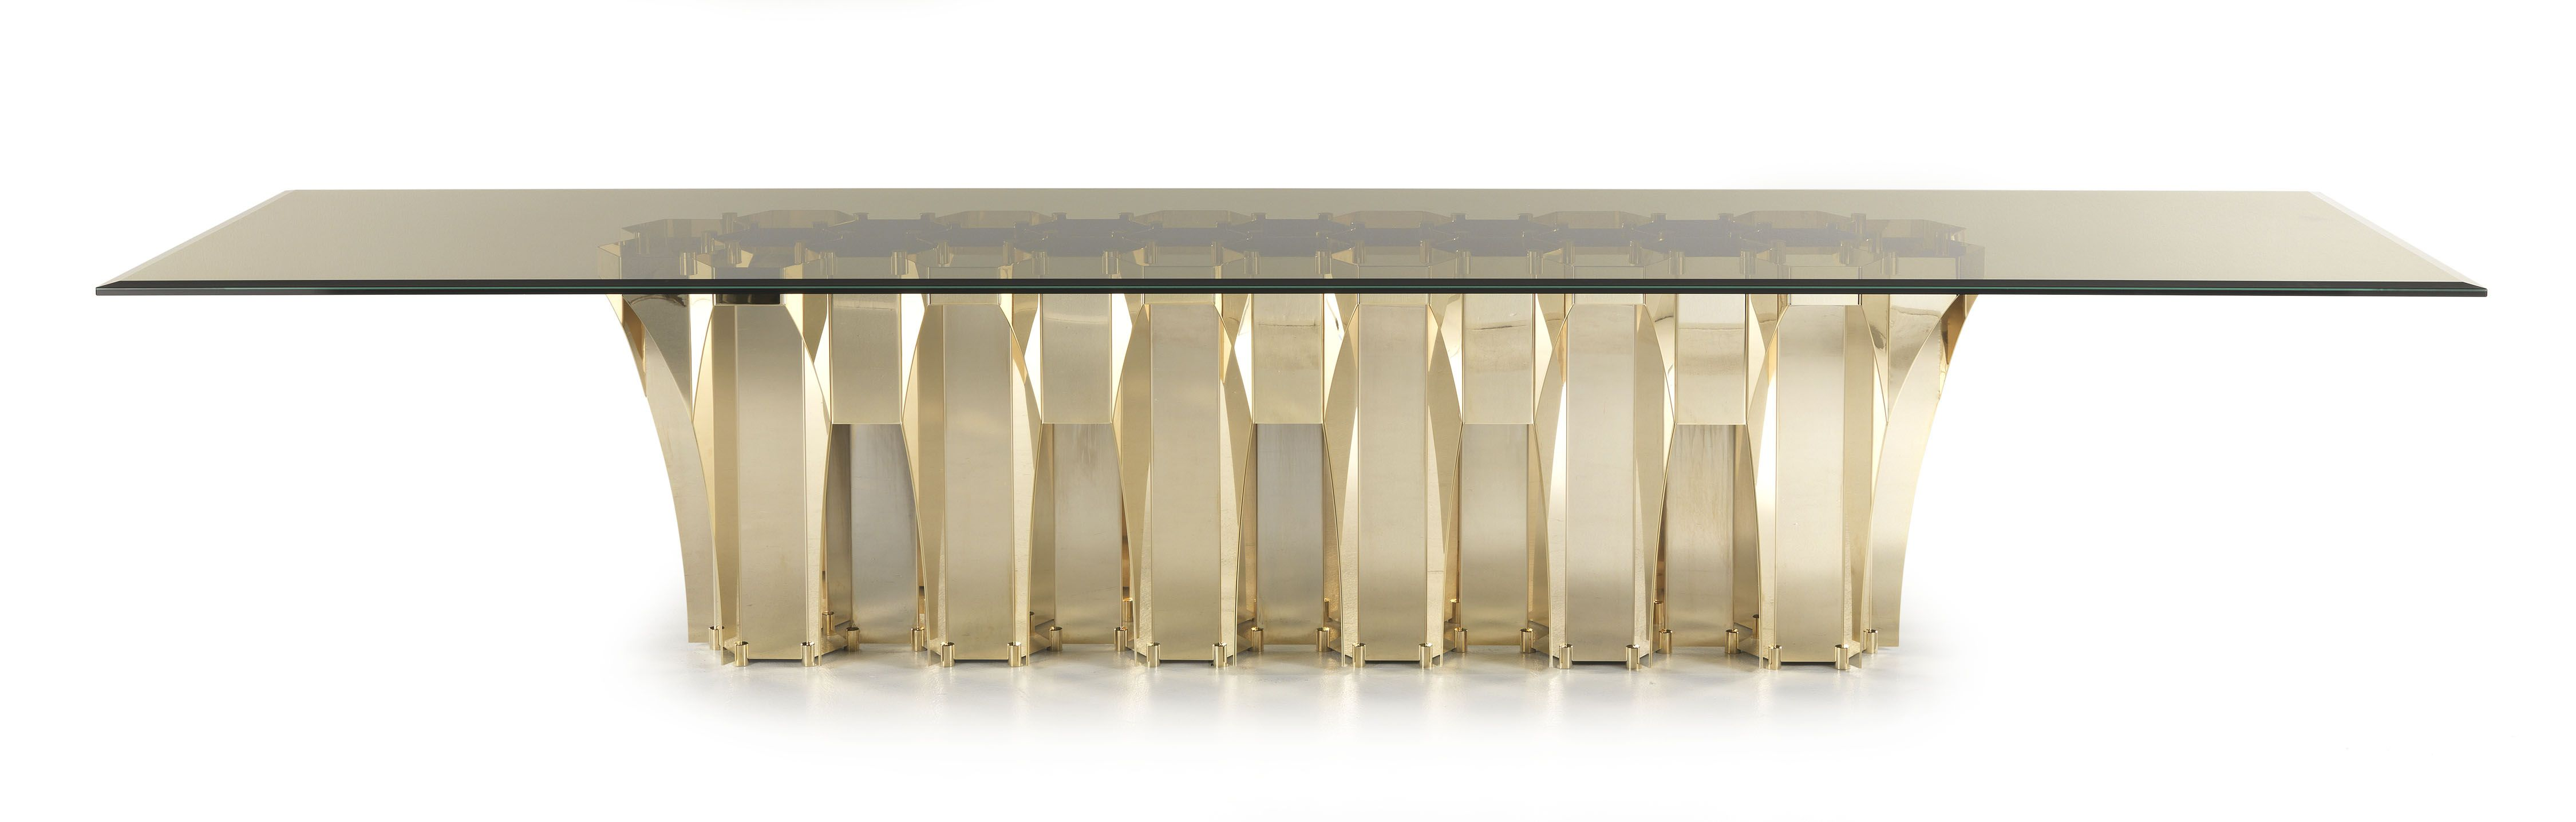 Soho Dining Table | Roberto Cavalli Home #RobertoCavalliHome #HomeInteriors  #Table #Gold